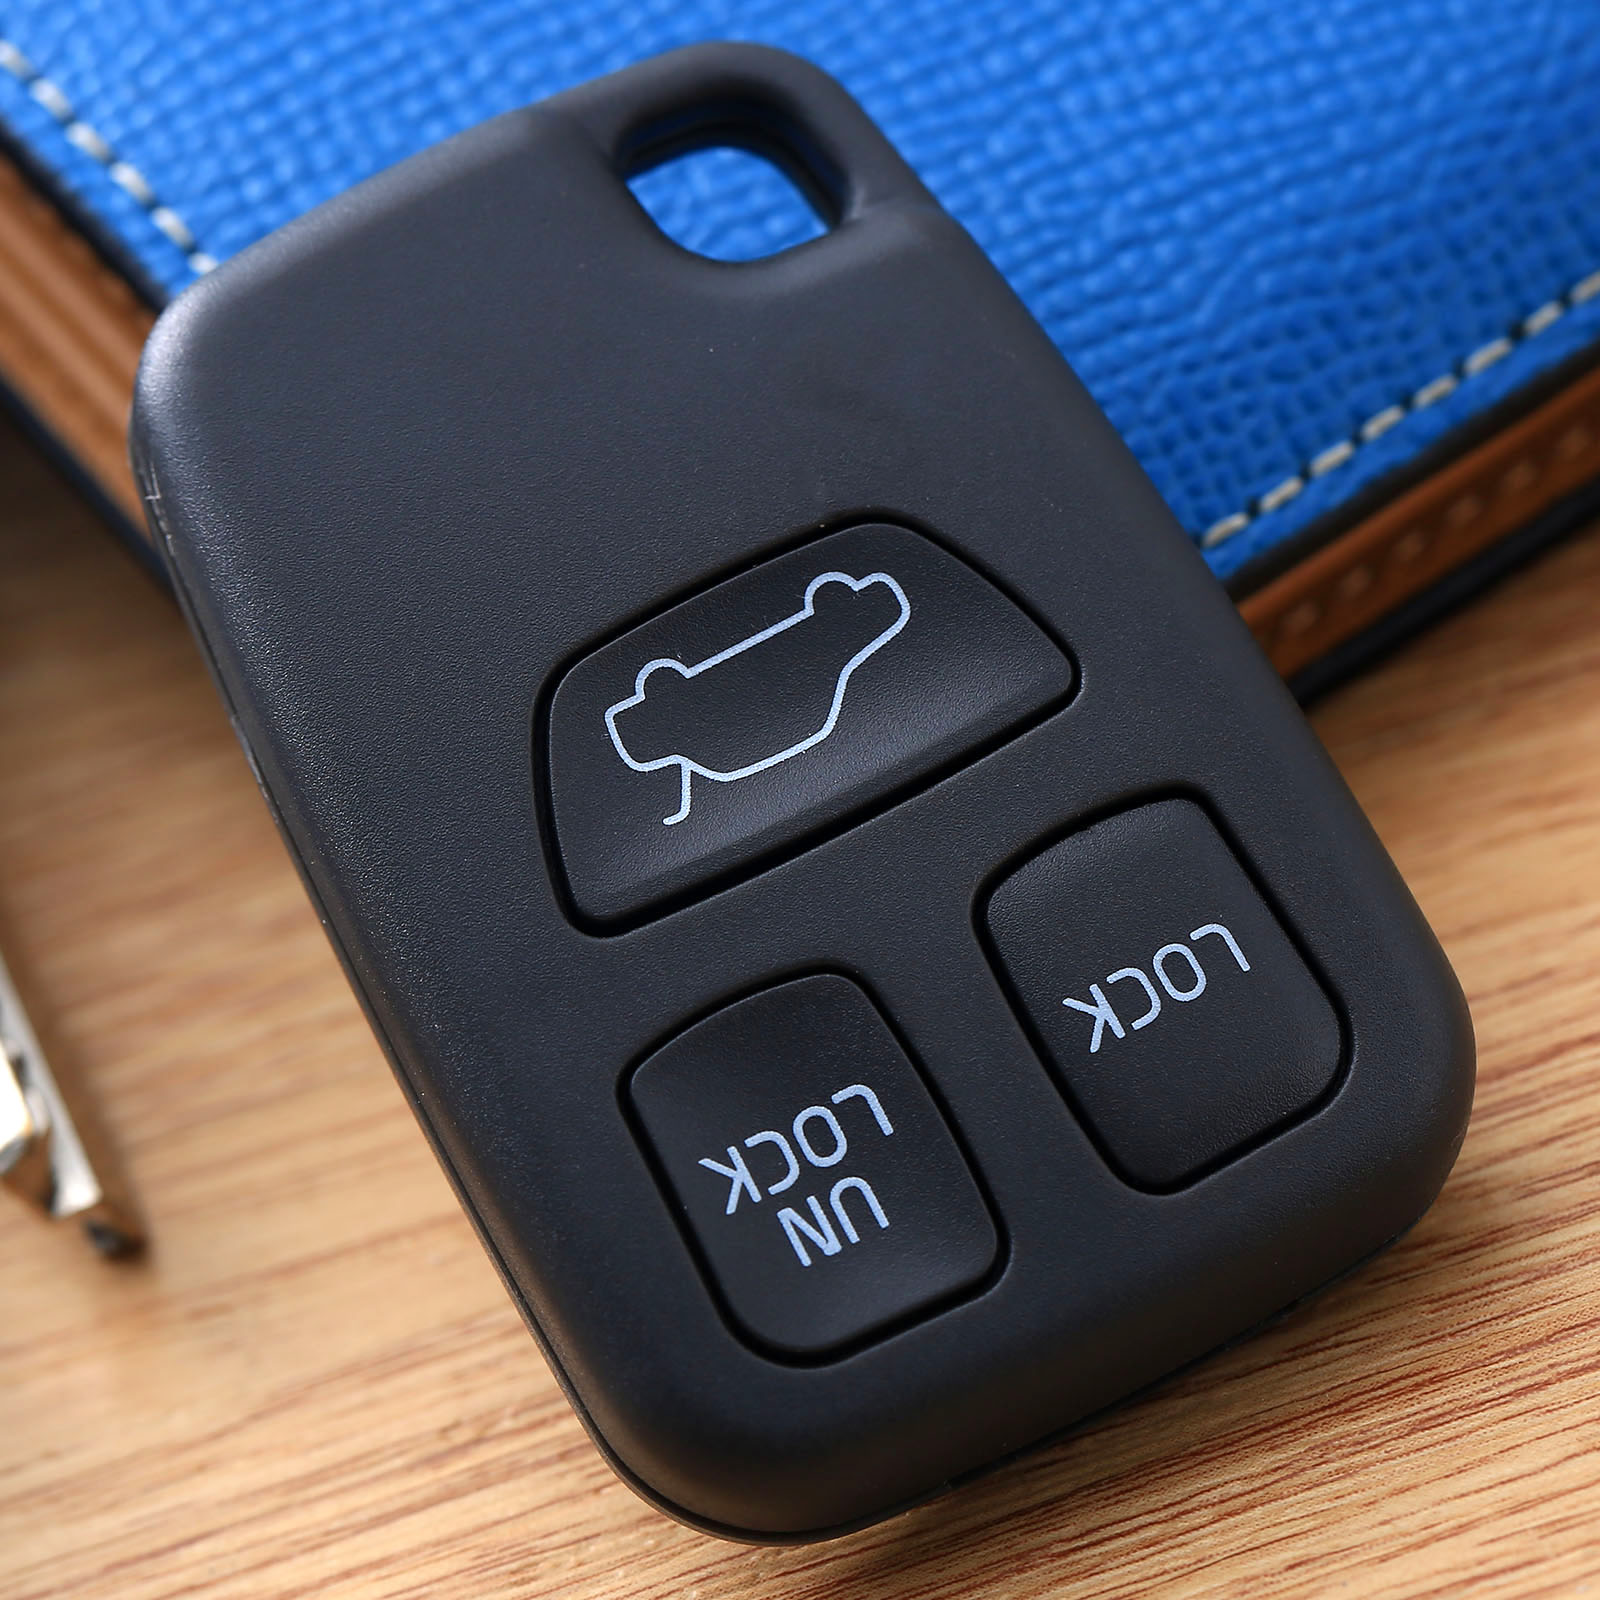 3Button Remote <font><b>Key</b></font> Cases Fob Cover Shell Fit For <font><b>VOLVO</b></font> C70 <font><b>S40</b></font> V40 V70 S70 1998-2000 Auto <font><b>Replacement</b></font> Keyless Entry <font><b>Key</b></font> Covers image